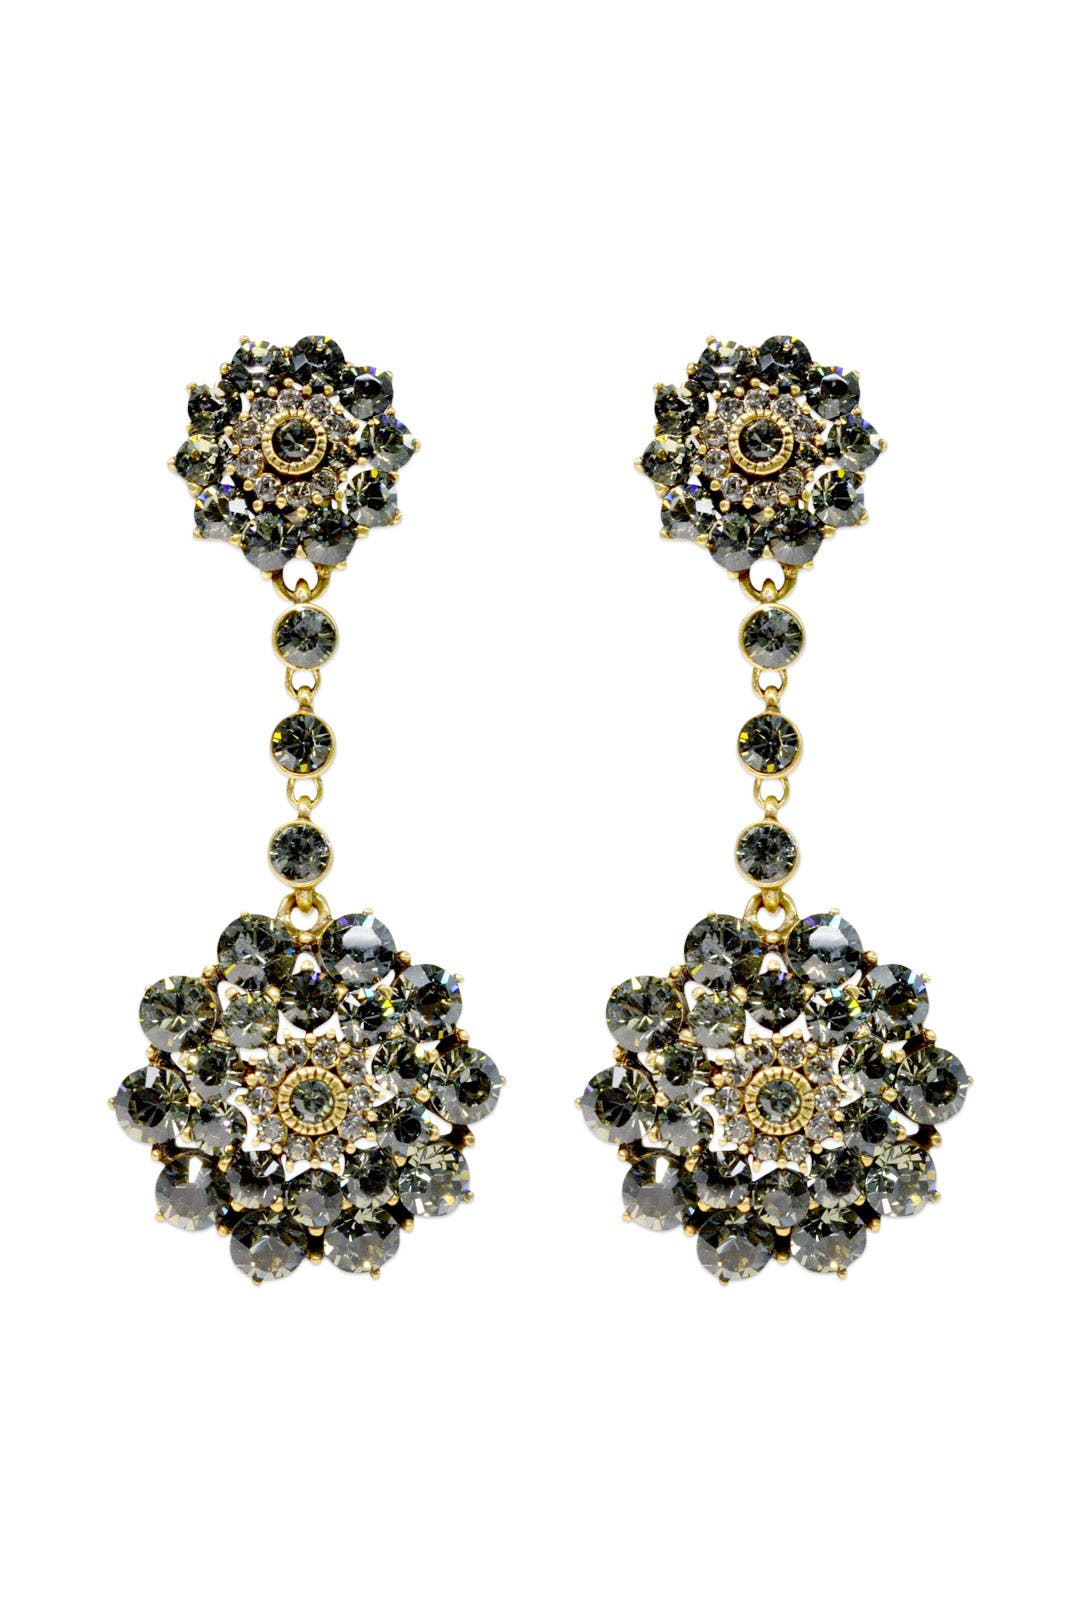 I See Stars Earrings by Oscar de la Renta